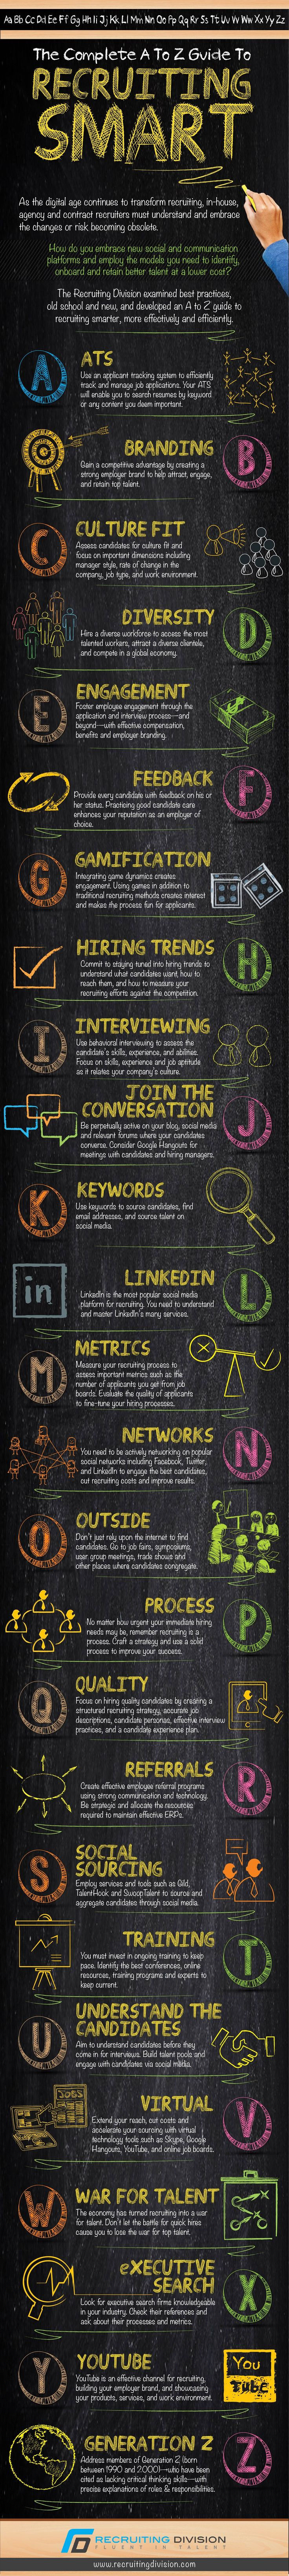 The Complete A to Z Guide To Smart Recruiting [INFOGRAPHIC]